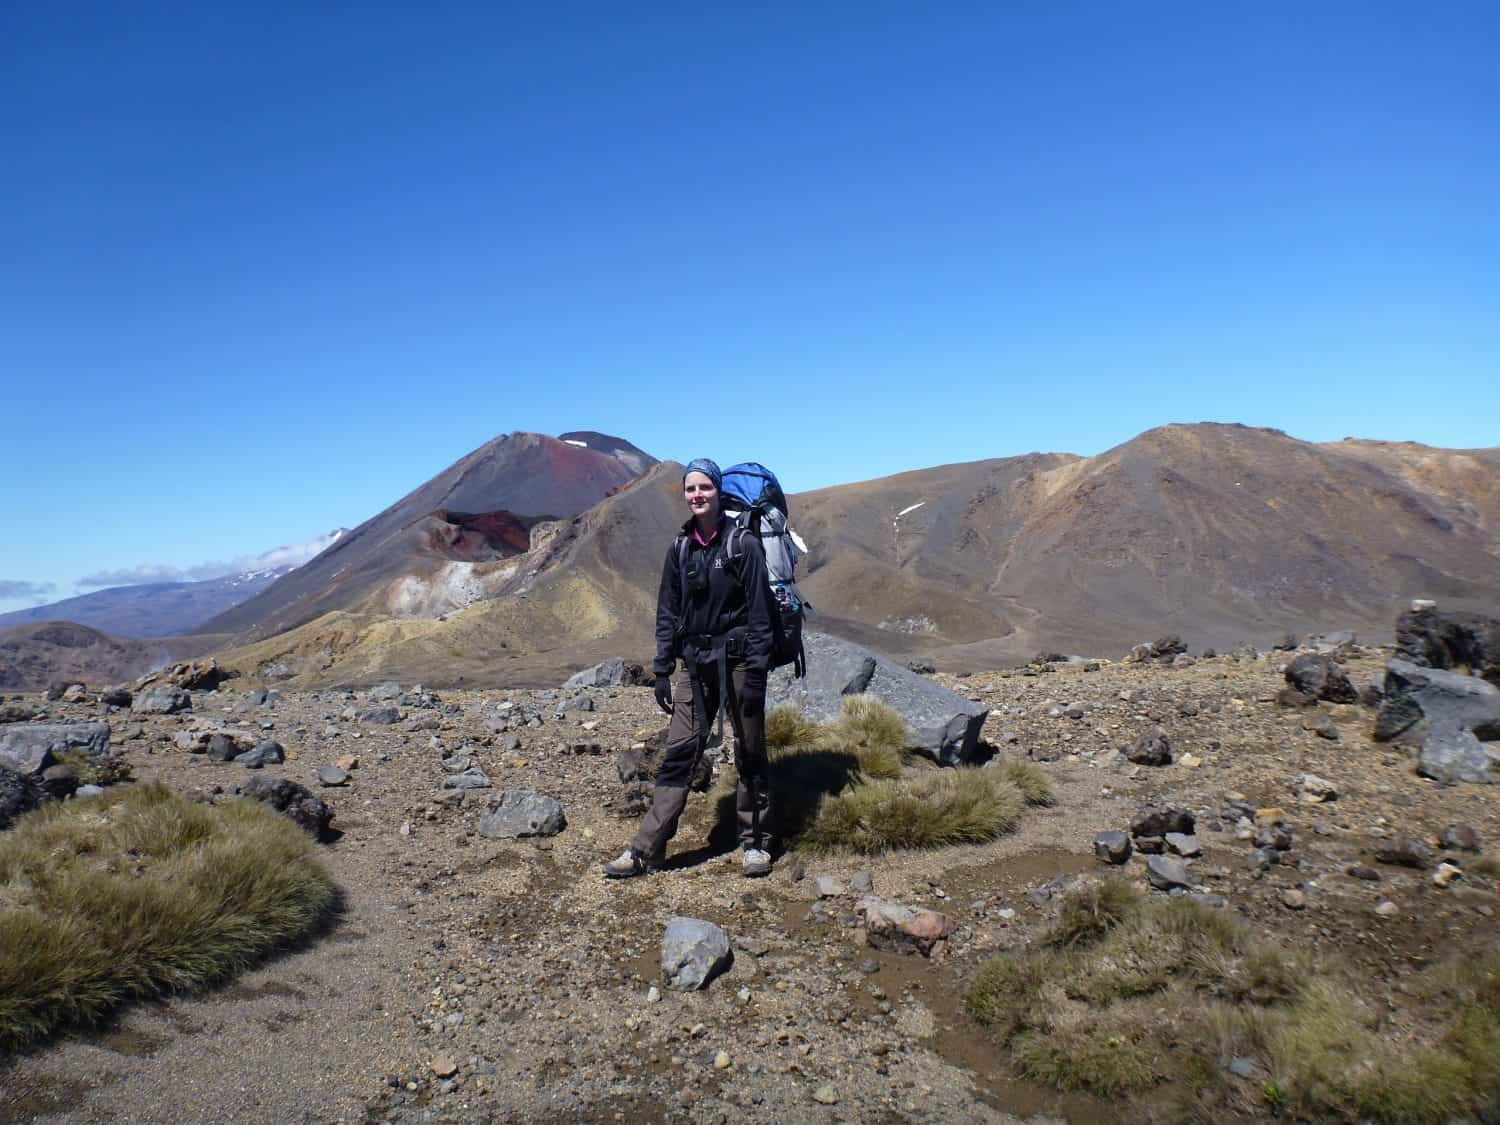 ME standing in front of Mount Tongariro in New Zealand